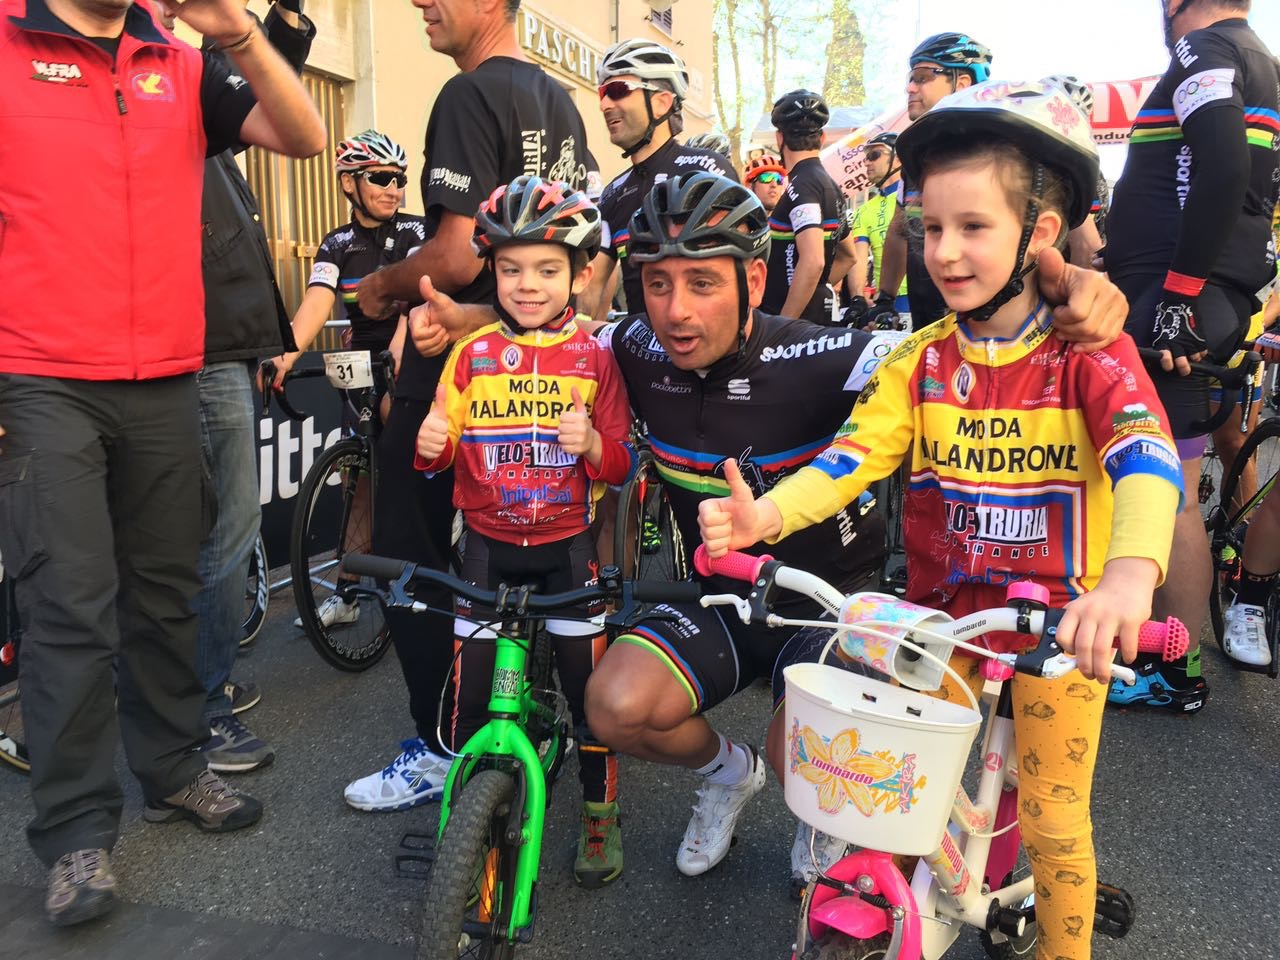 GREEN FONDO-PAOLO BETTINI: FESTA RIUSCITA!